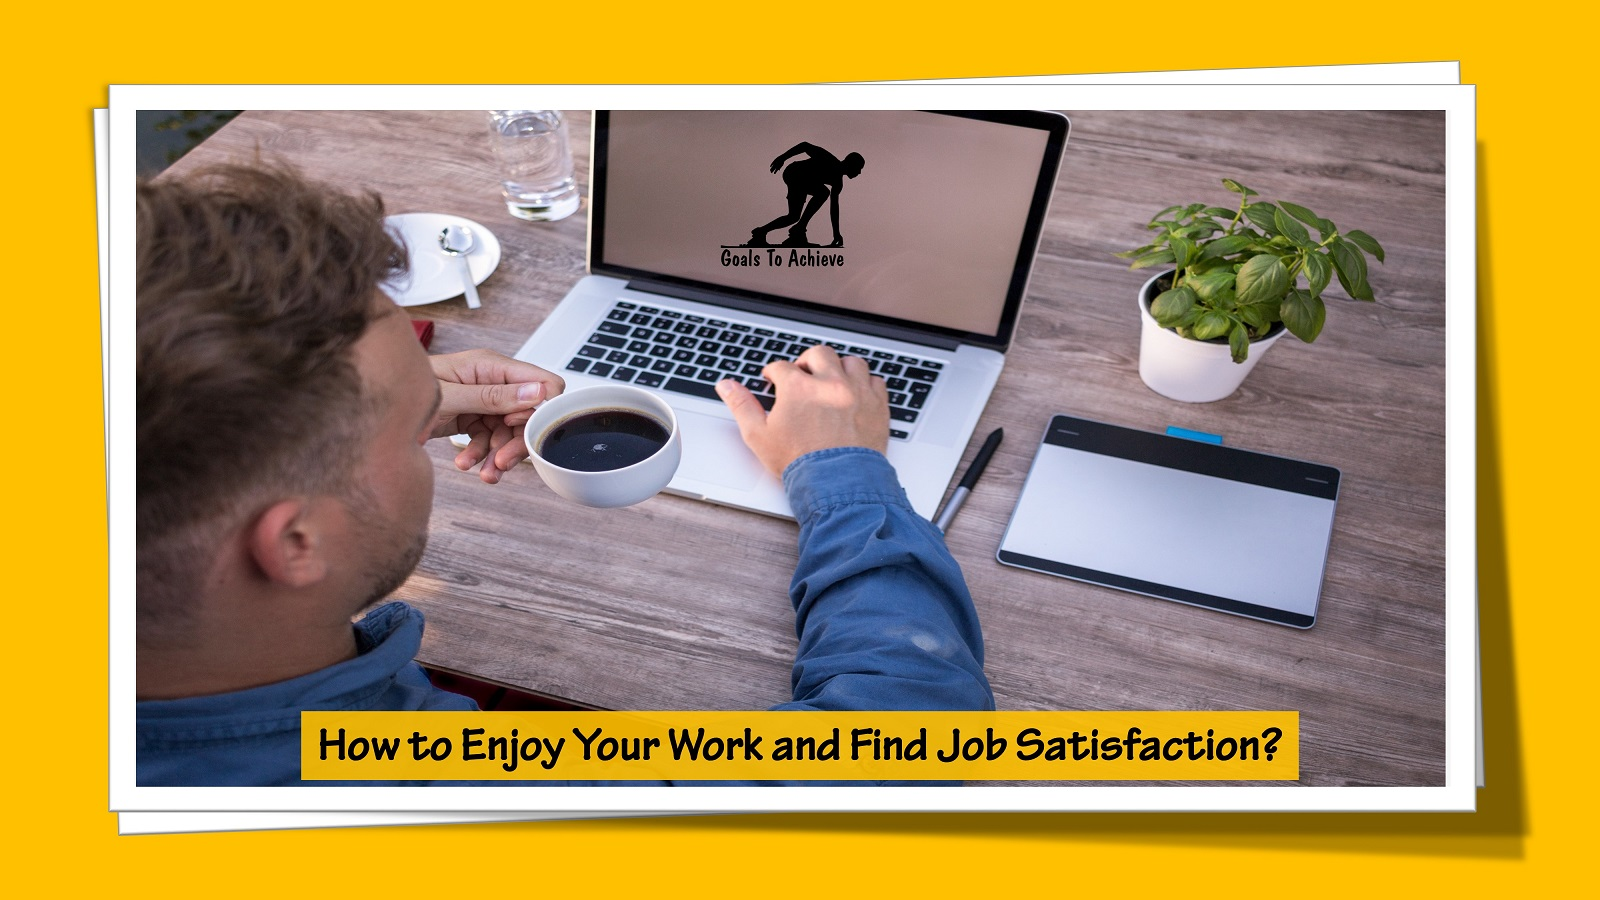 How to Enjoy Your Work and Find Job Satisfaction?